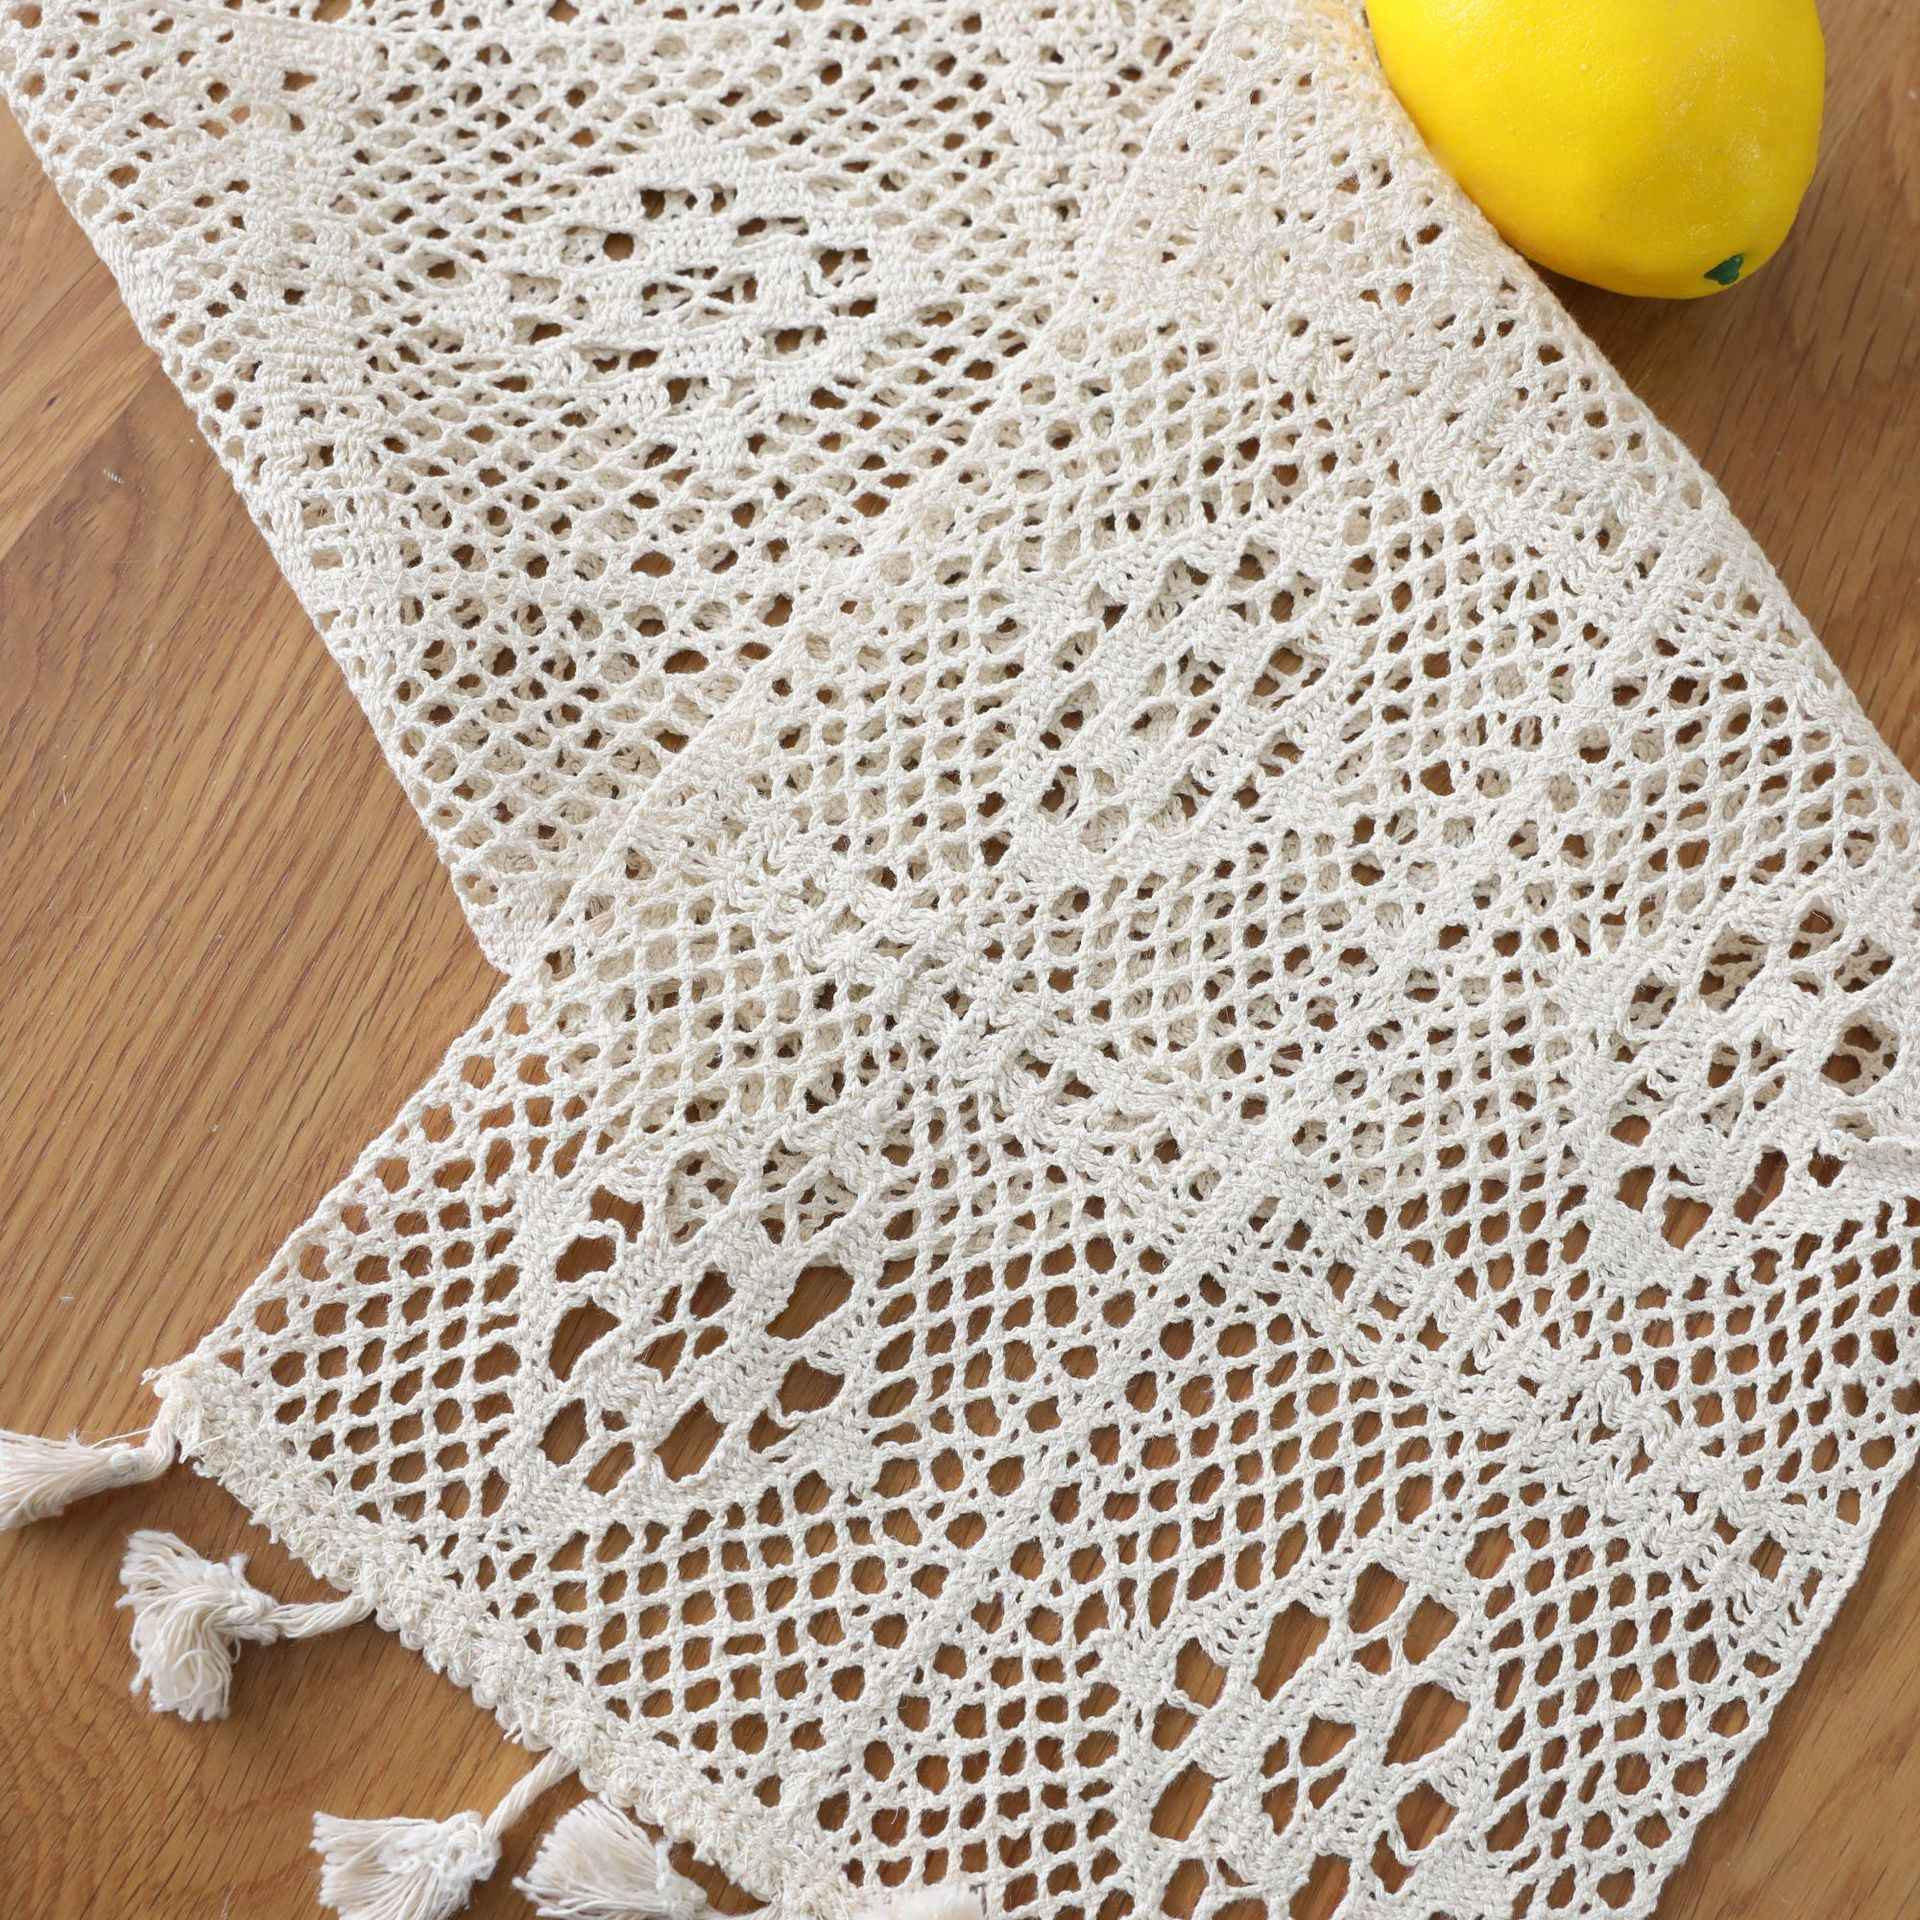 Sunnyrain 1 Piece Cotton White Crochet Table Runner Christmas Party Table Decoration Table Runners